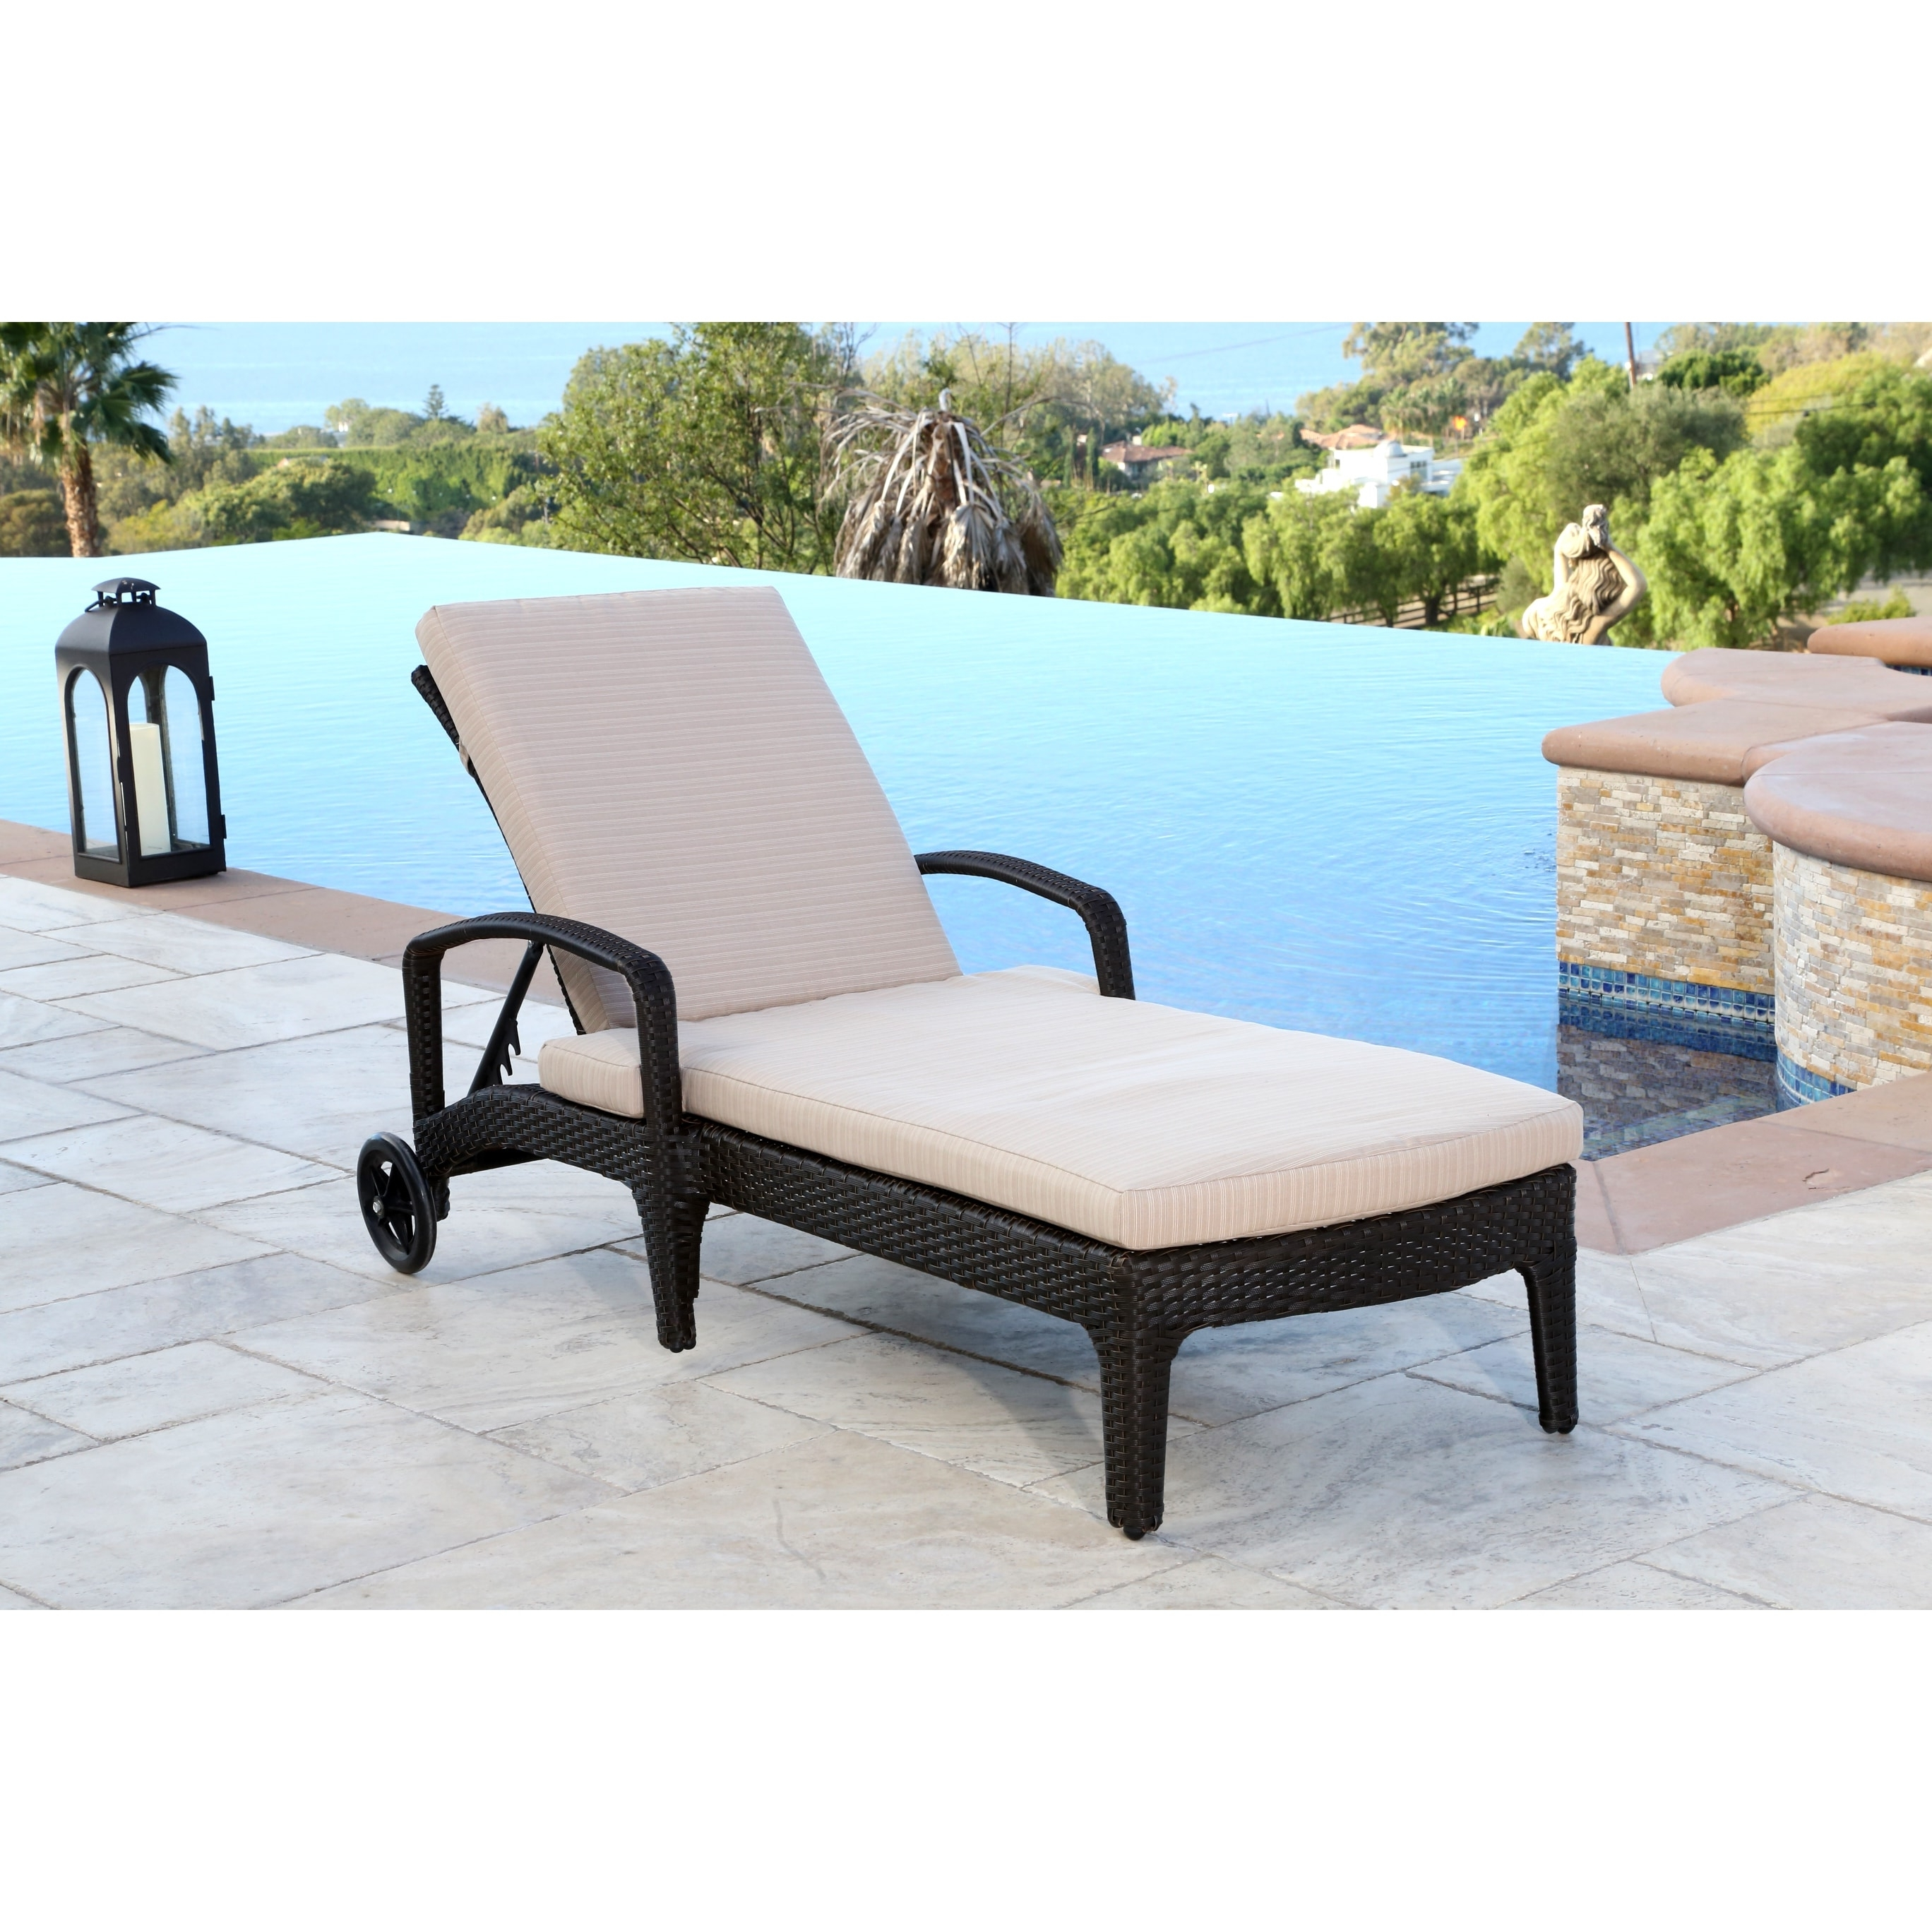 Abbyson Newport Outdoor Wicker Chaise Lounge – Free Shipping Today Throughout Most Up To Date Newport Chaise Lounge Chairs (View 10 of 15)